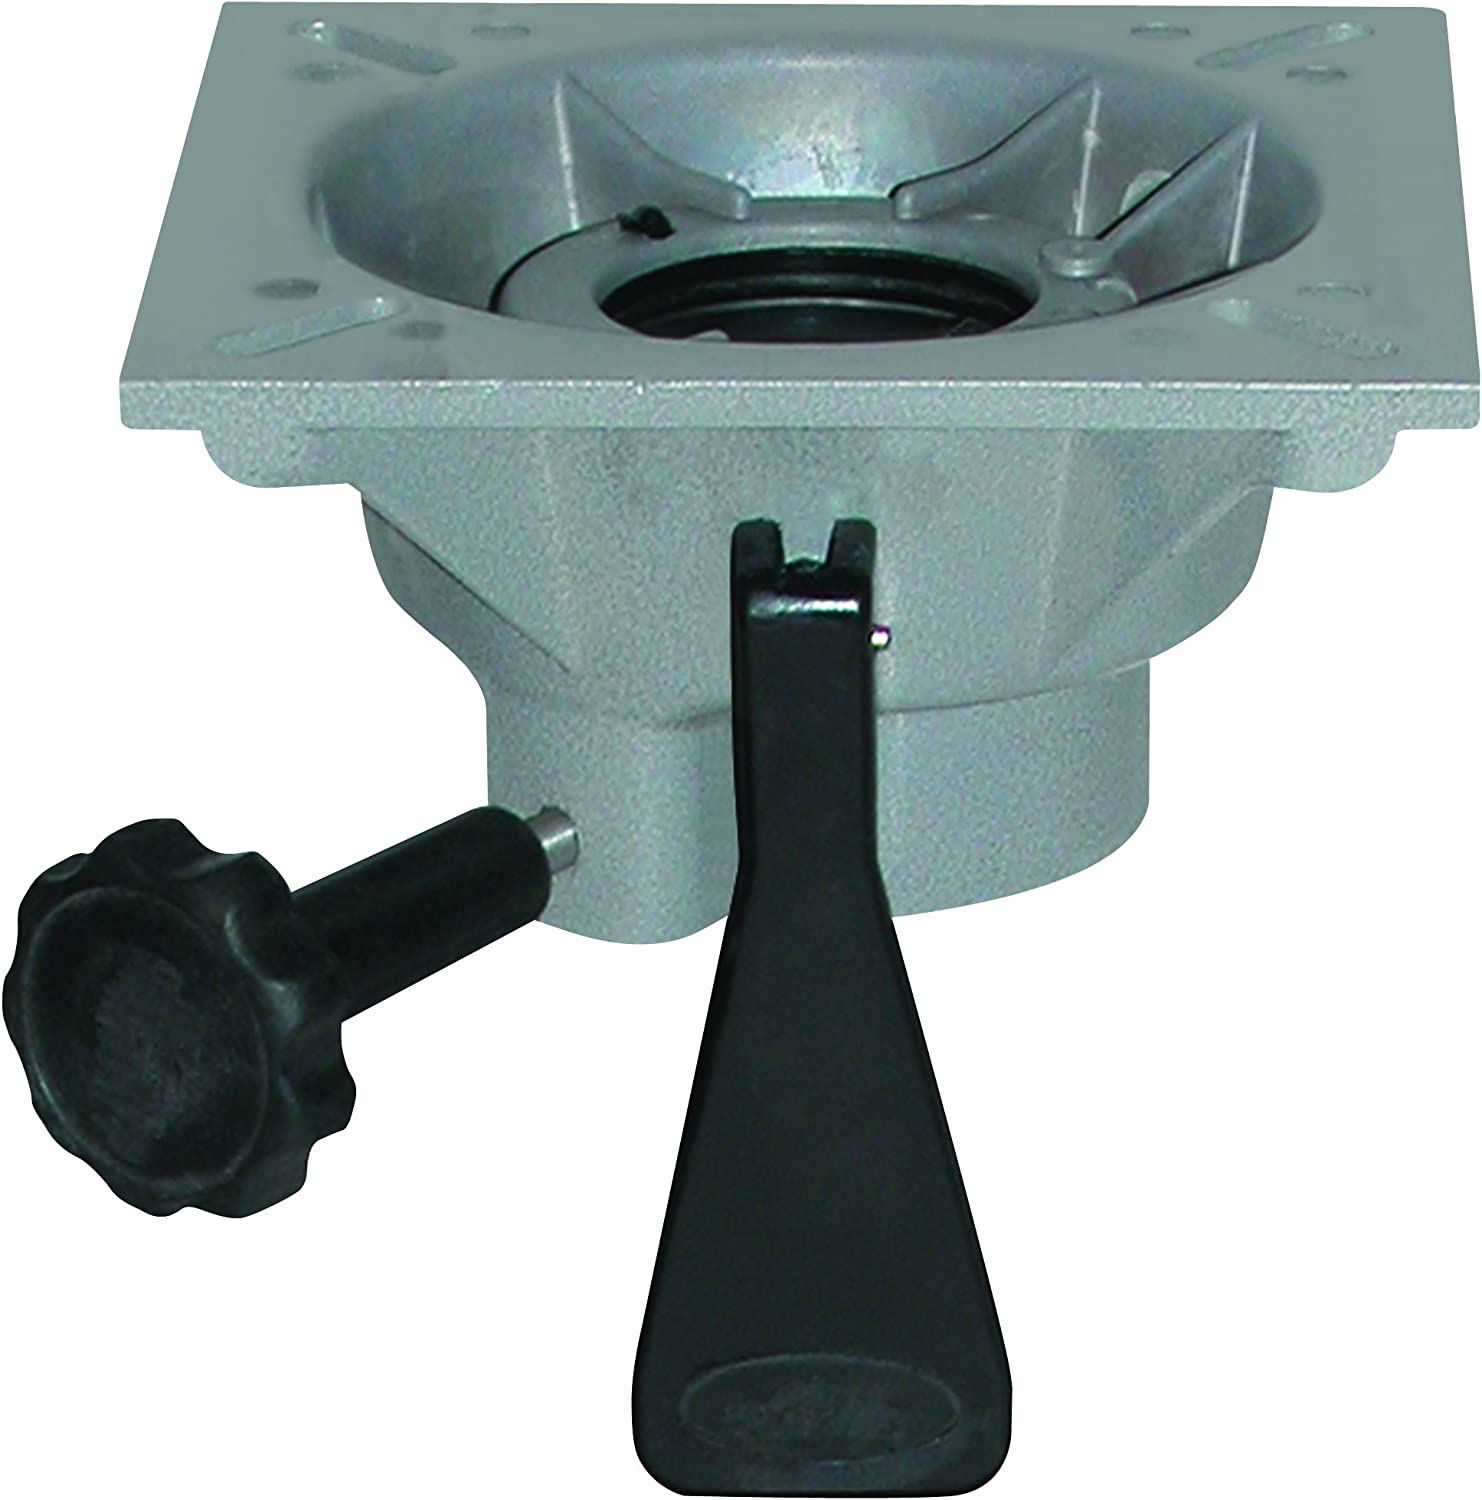 "Wise 8WP95 Cast Seat Mount Spider, Fits 2 3/8"" Pedestal,Aluminum"